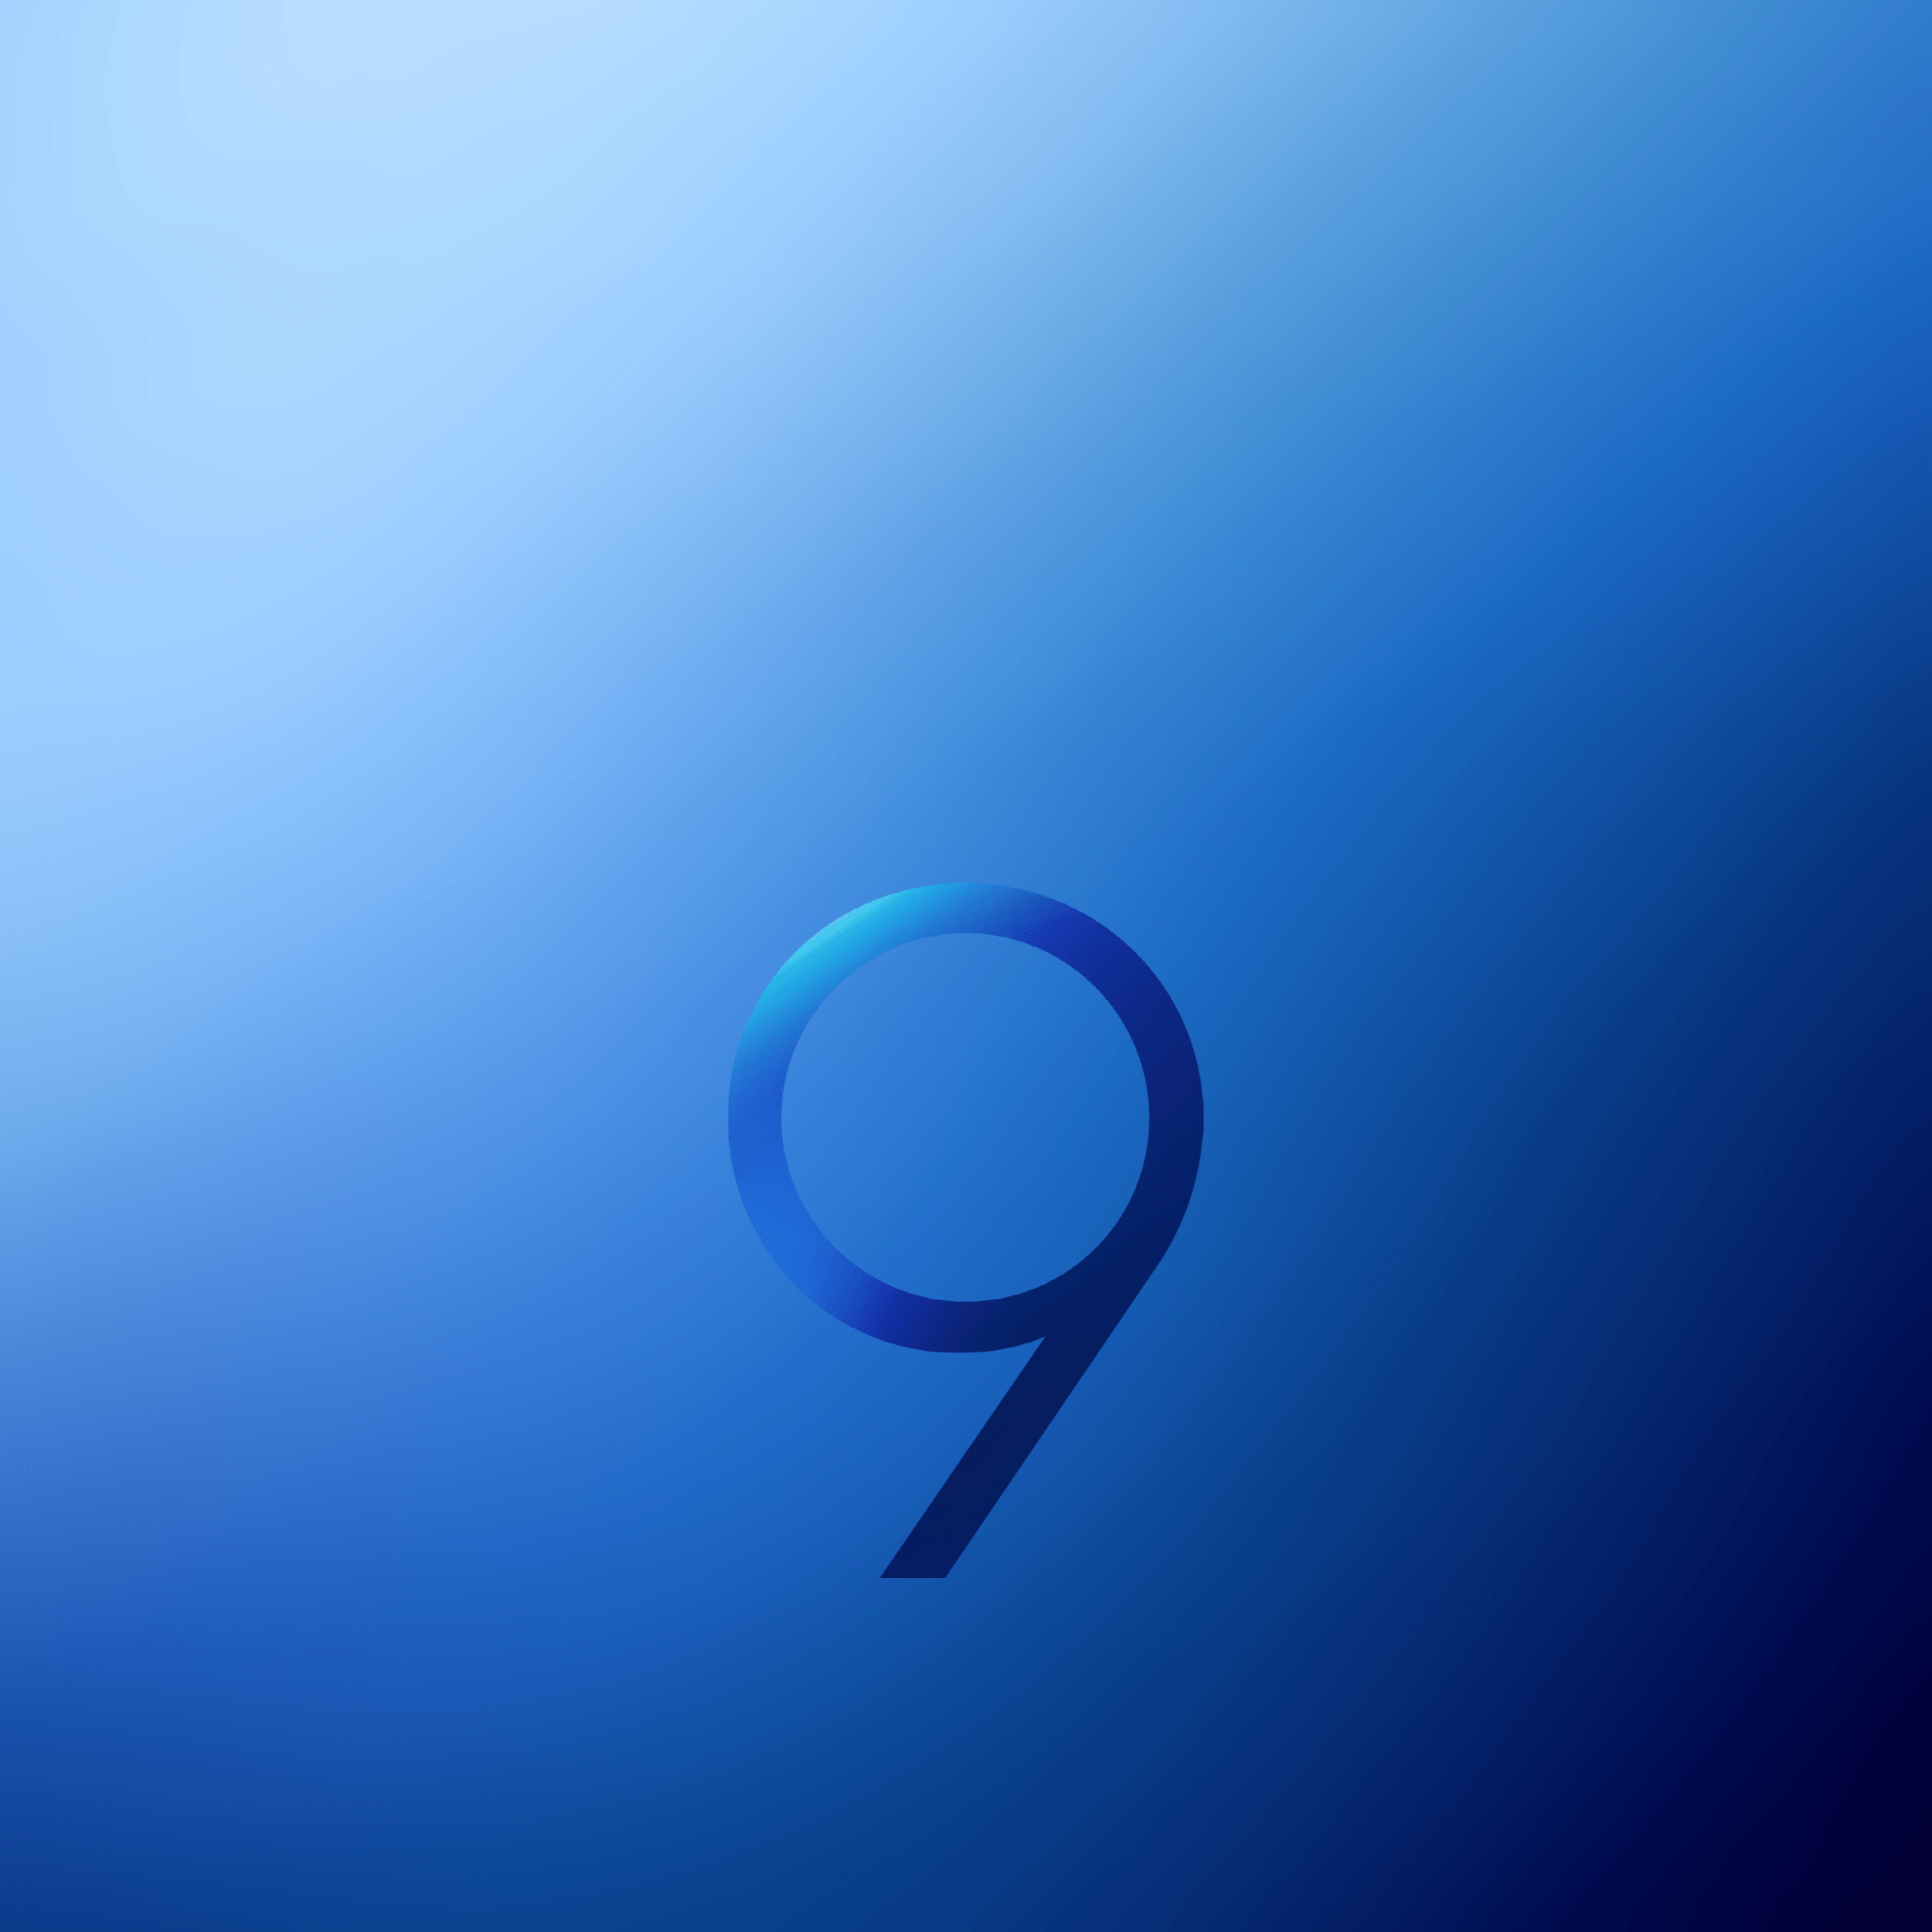 Here's all of the Samsung Galaxy S9 wallpapers in all their glory